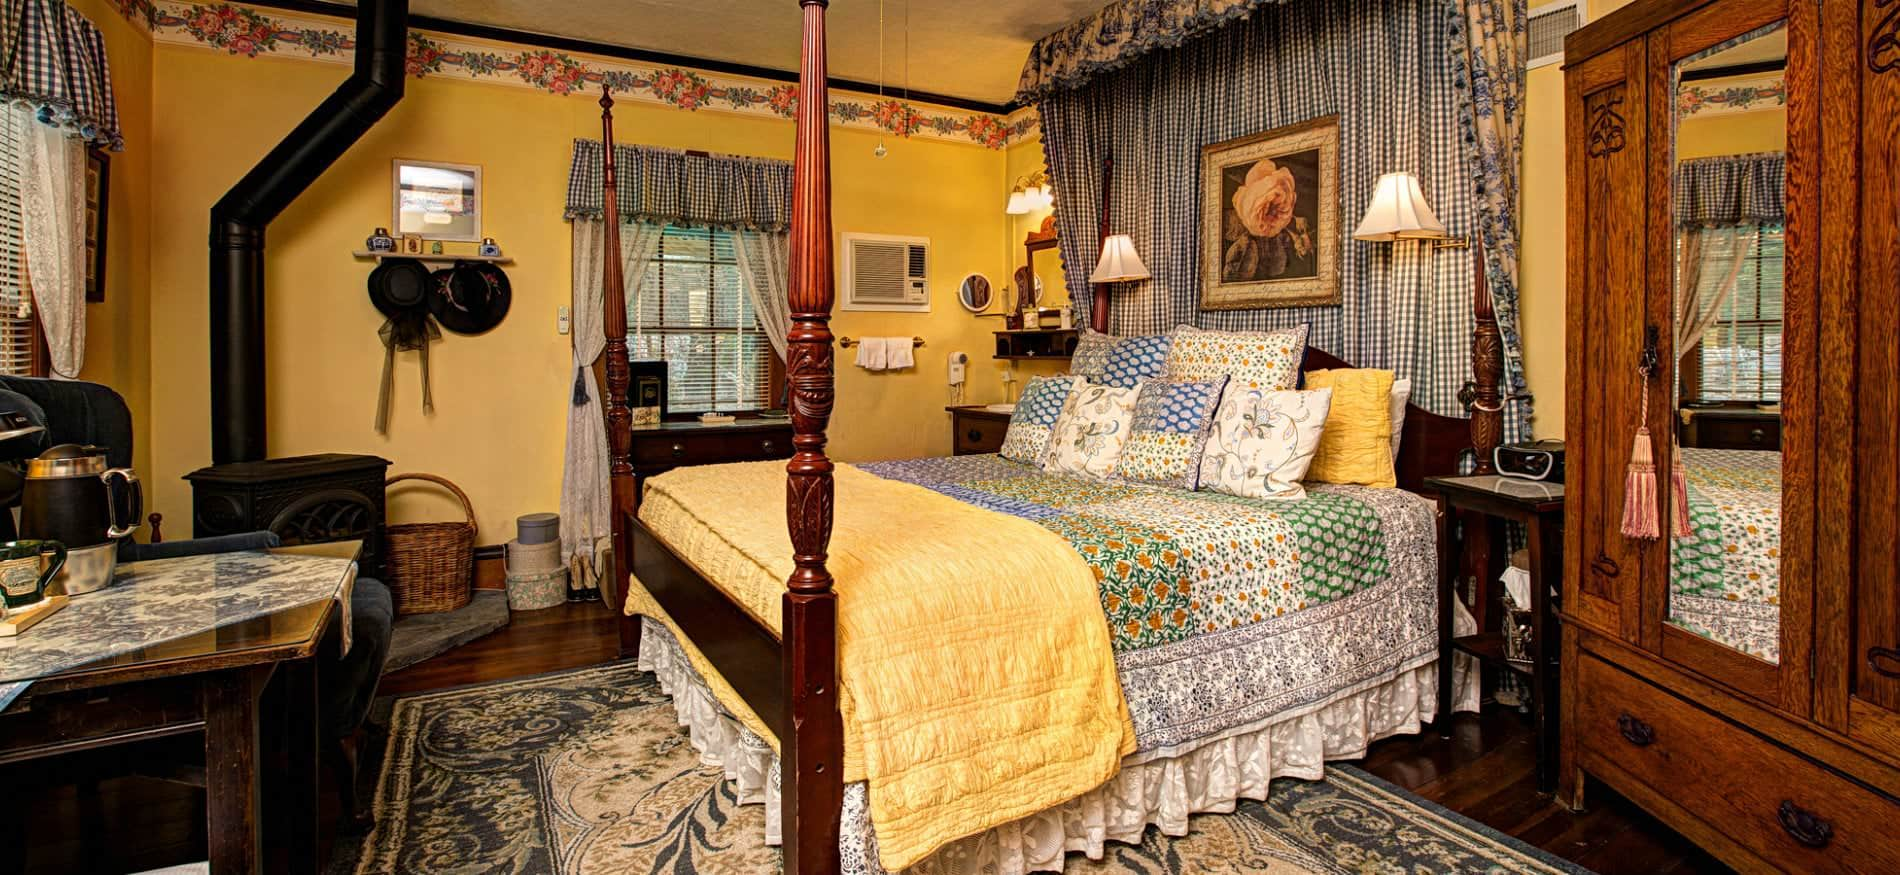 Yellow guest room with wood floors, area rug, colorfully covered four poster bed, and blue and white gingham window valances